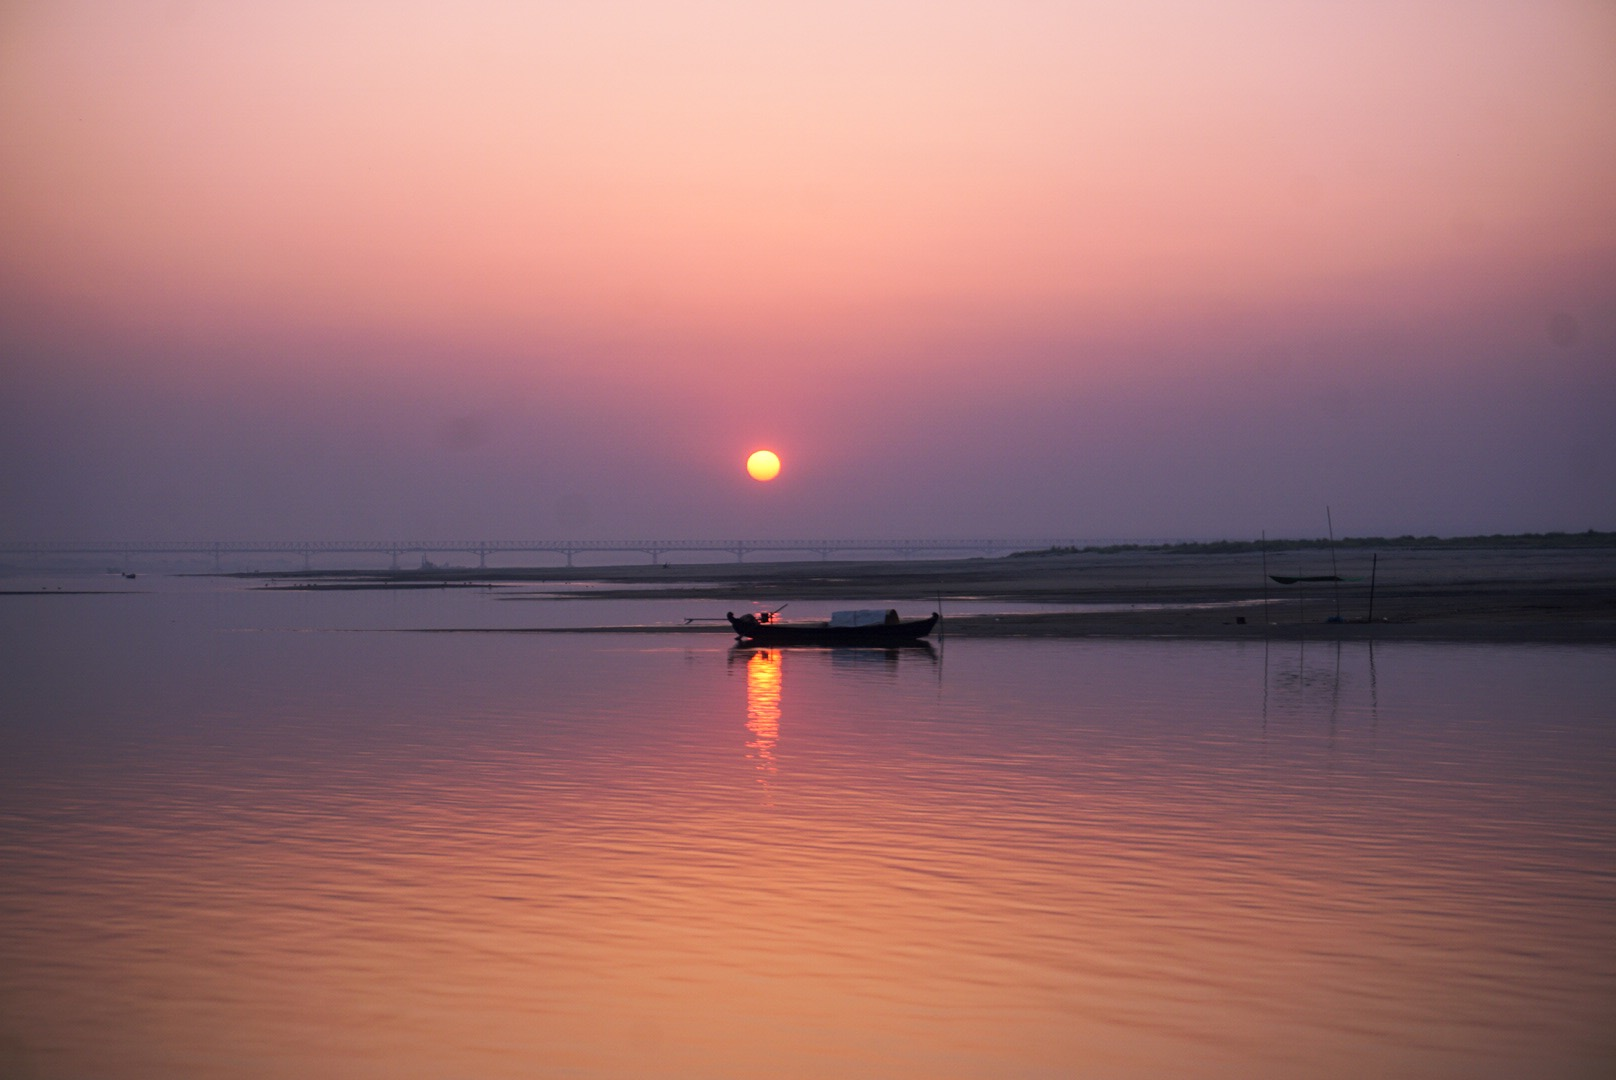 Sunrise on the Irrawaddy river.